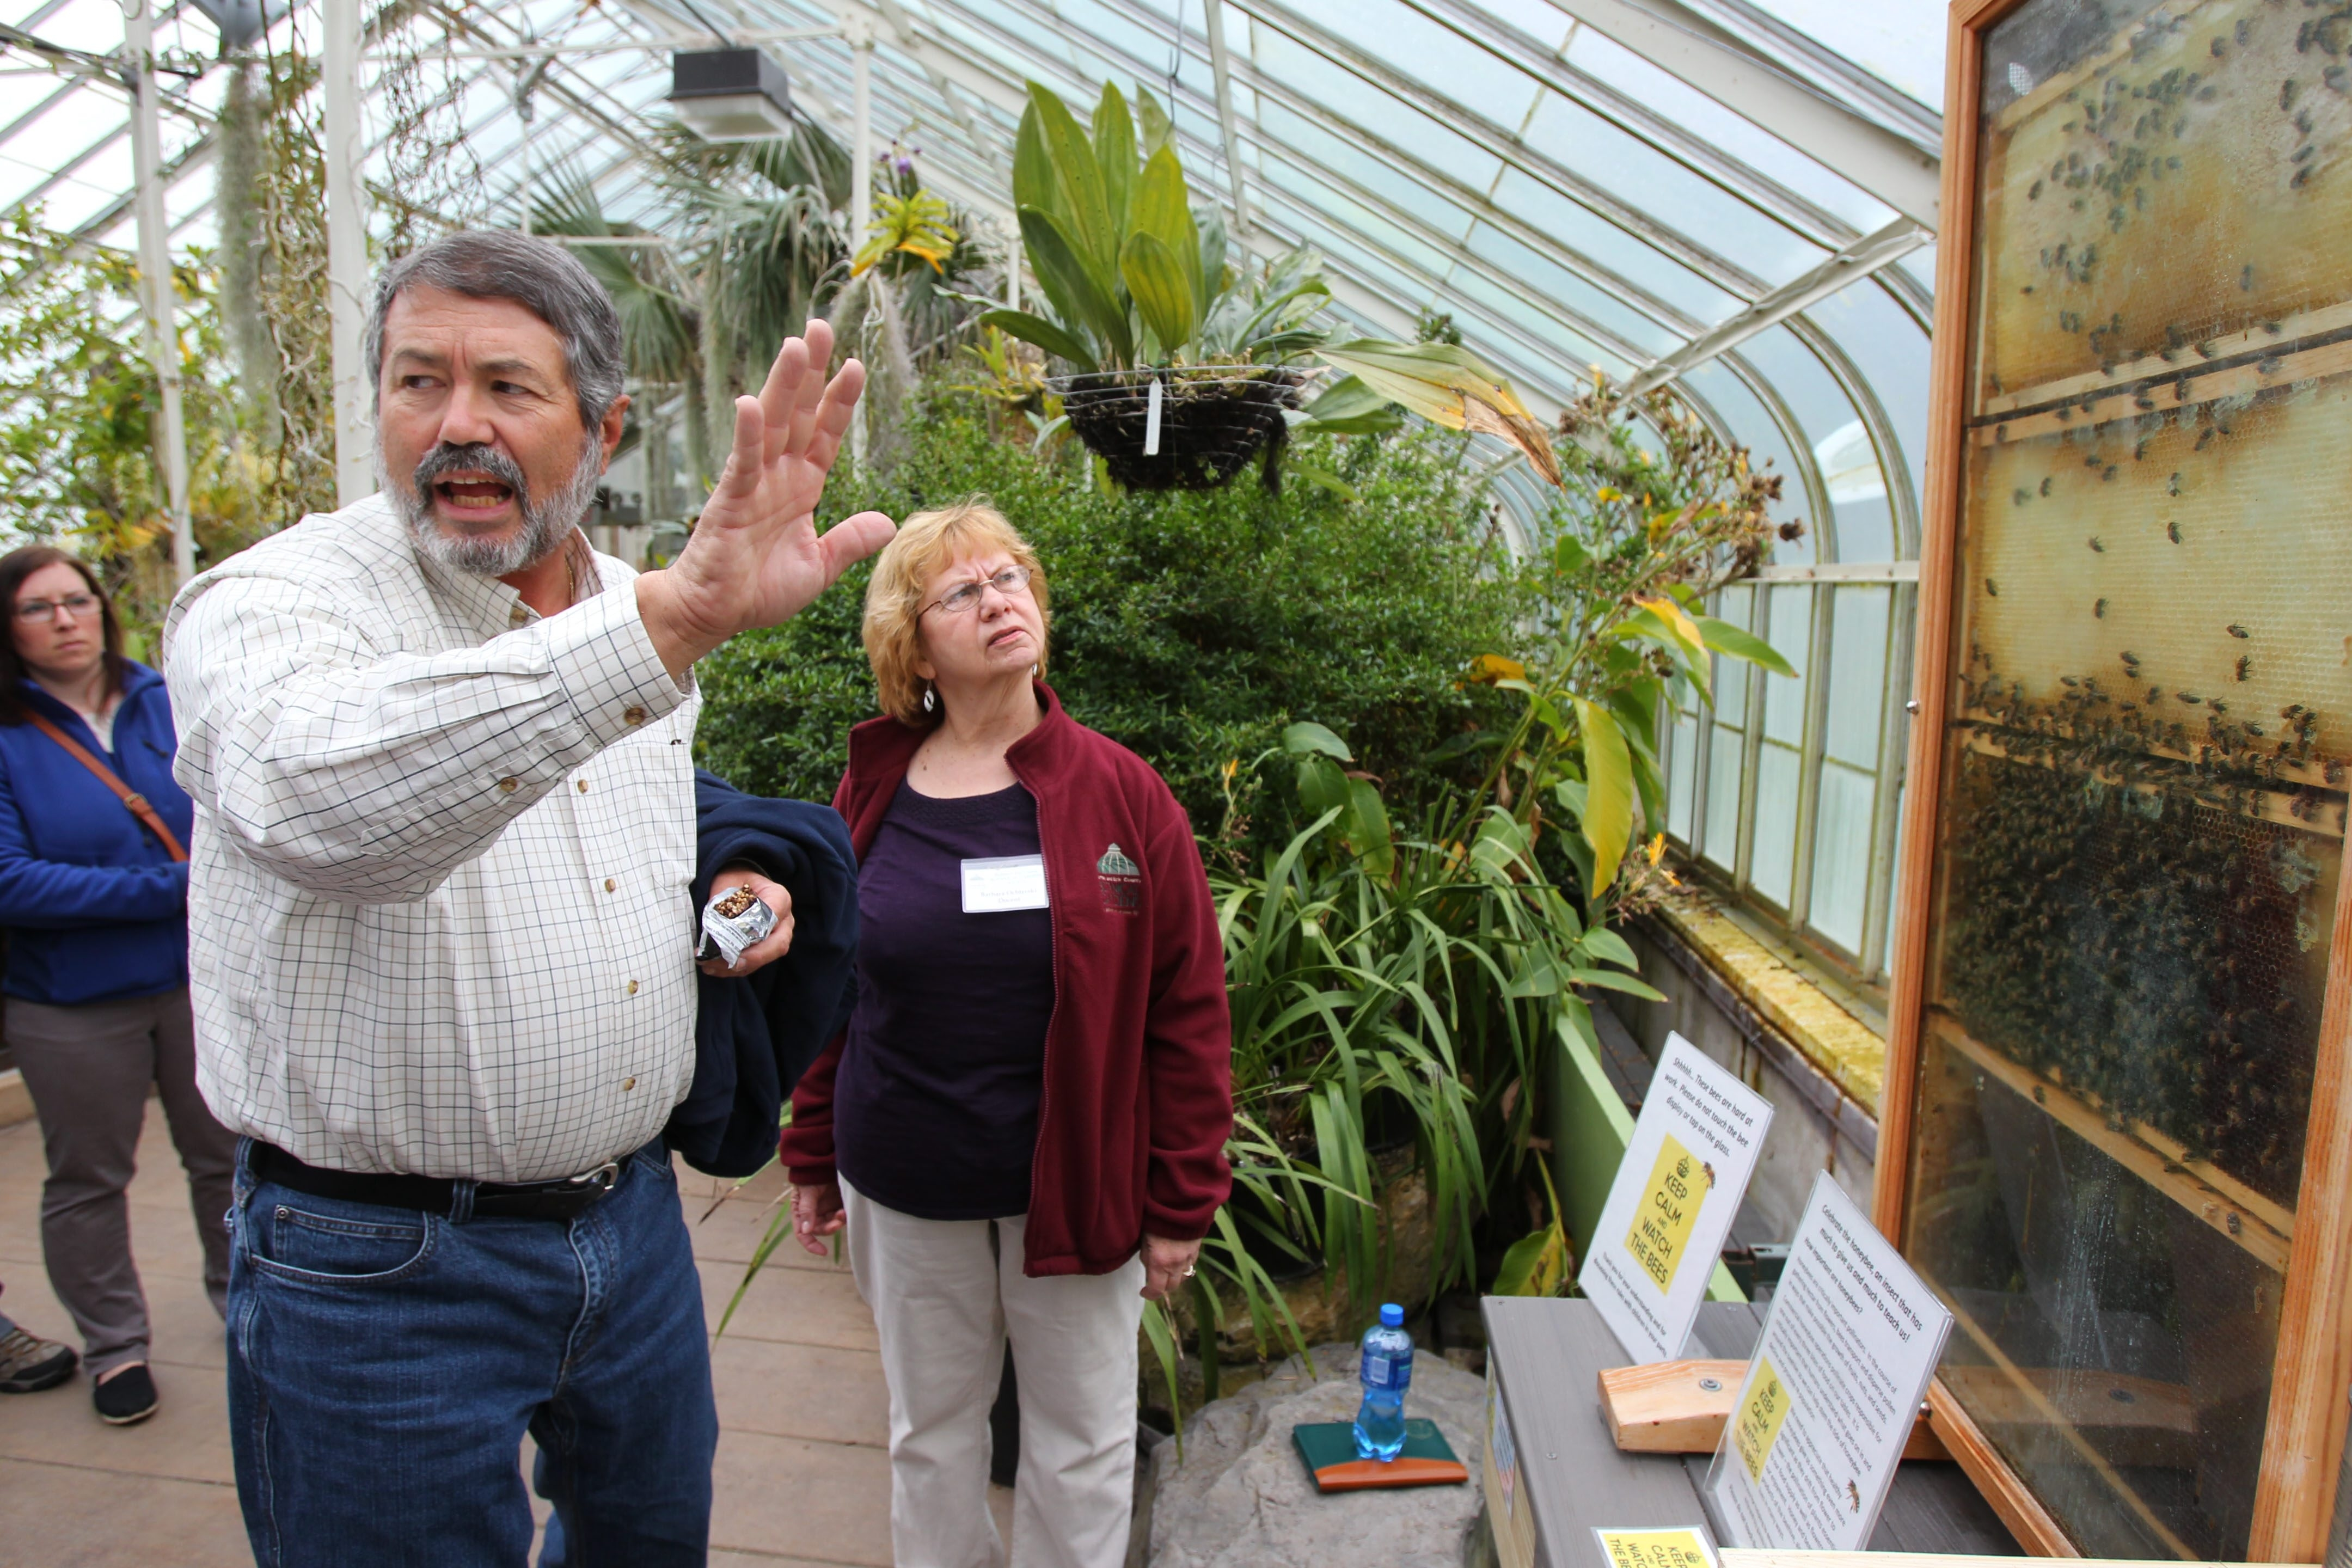 Beekeepers Joe DiDomenico and Barbara Ochterski talk about the features of a honeybee hive Saturday at the Buffalo and Erie County Botanical Gardens. Honeybees pollinate more than 90 crops that the U.S. Department of Agriculture values at $15 billion a year.